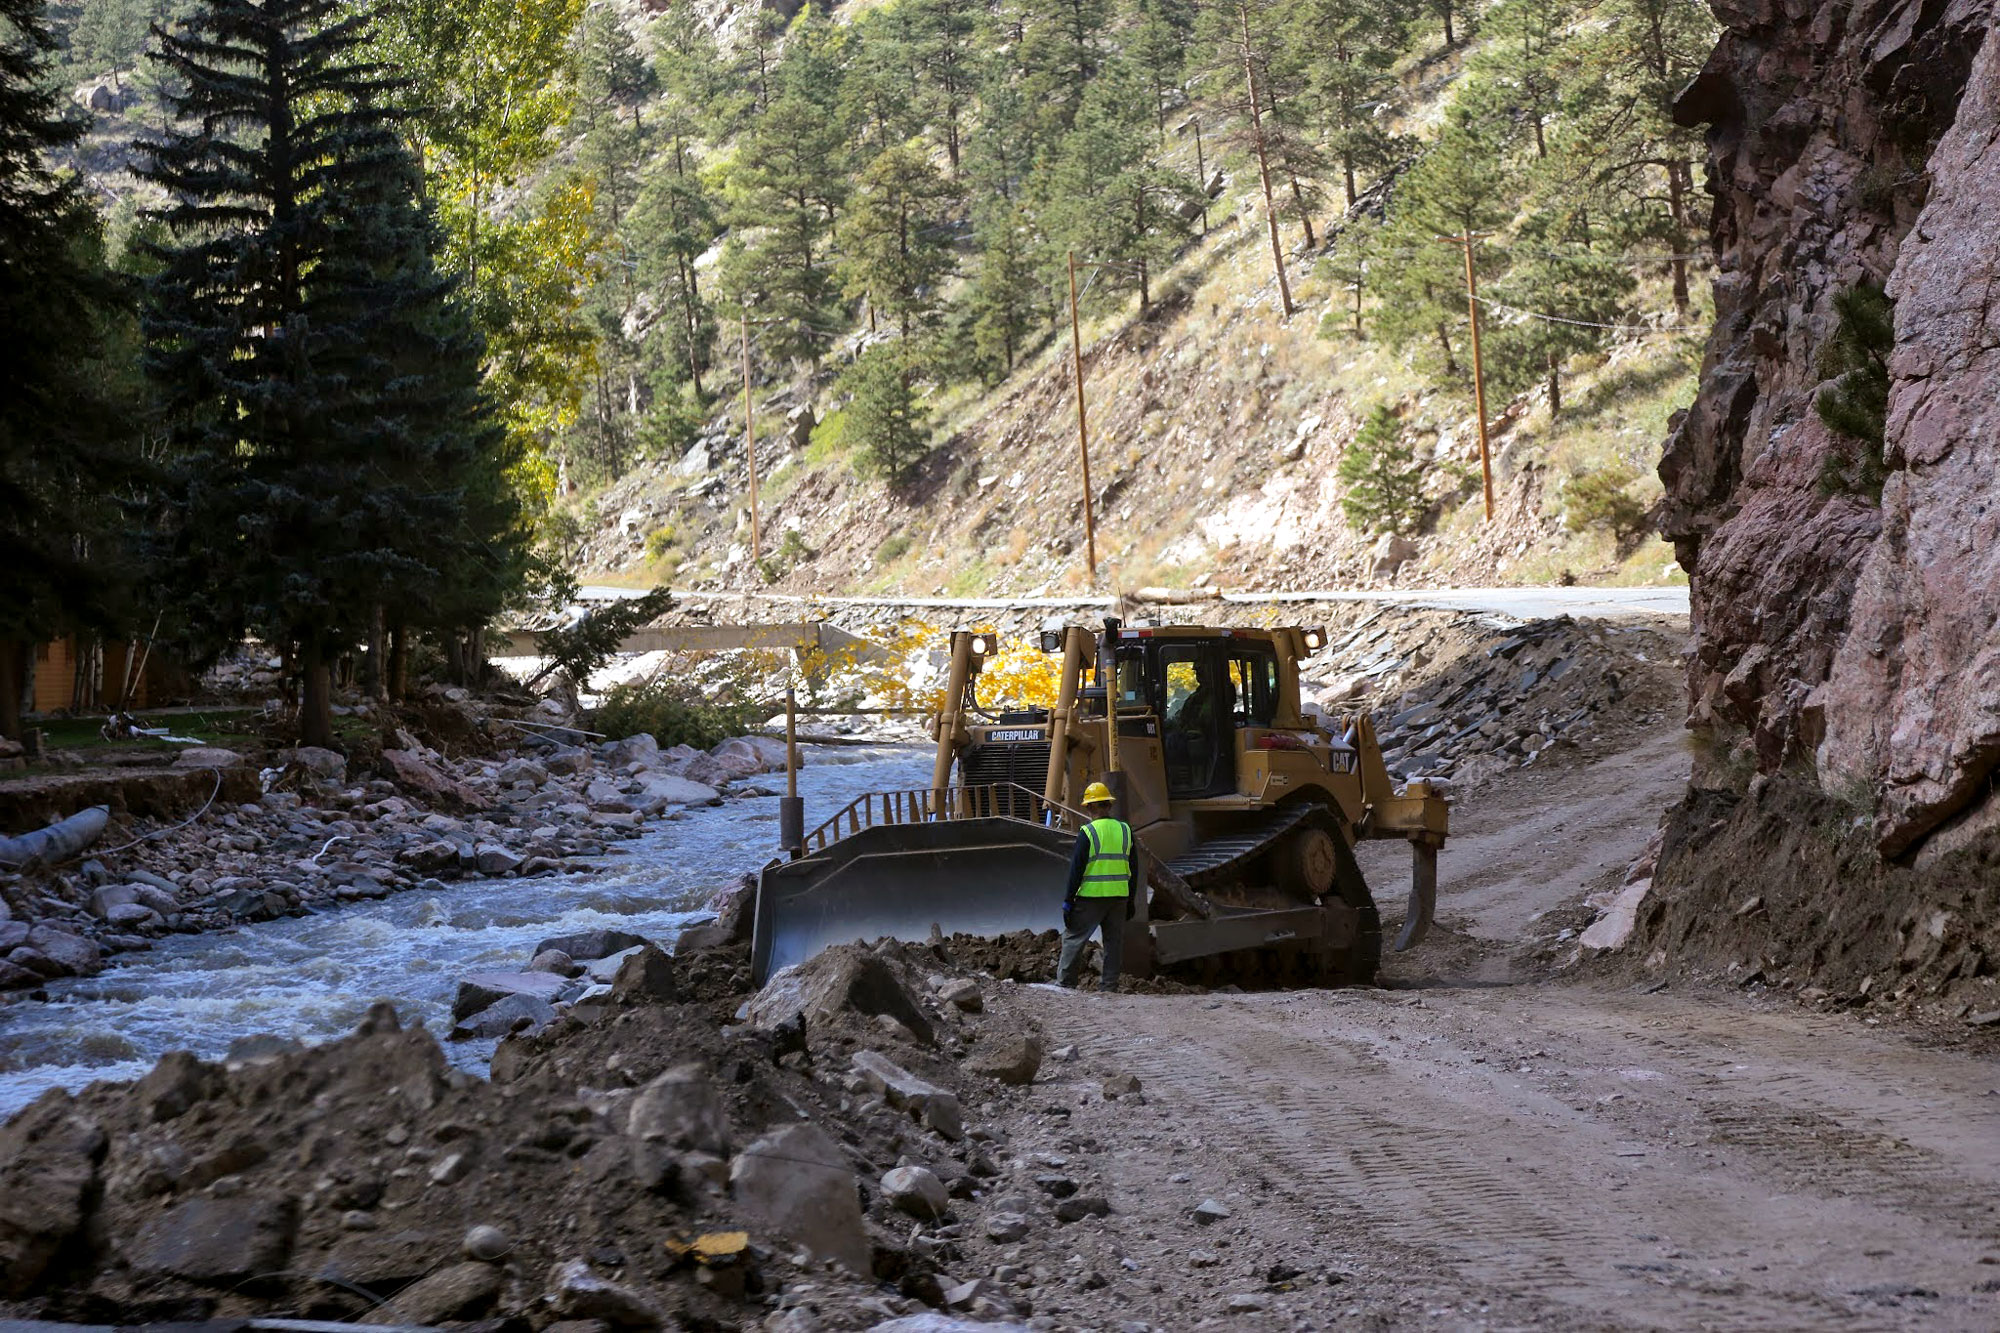 A construction worker guides a bulldozer working on US 34 between Estes Park and Drake, Colo., Oct. 3, 2013.